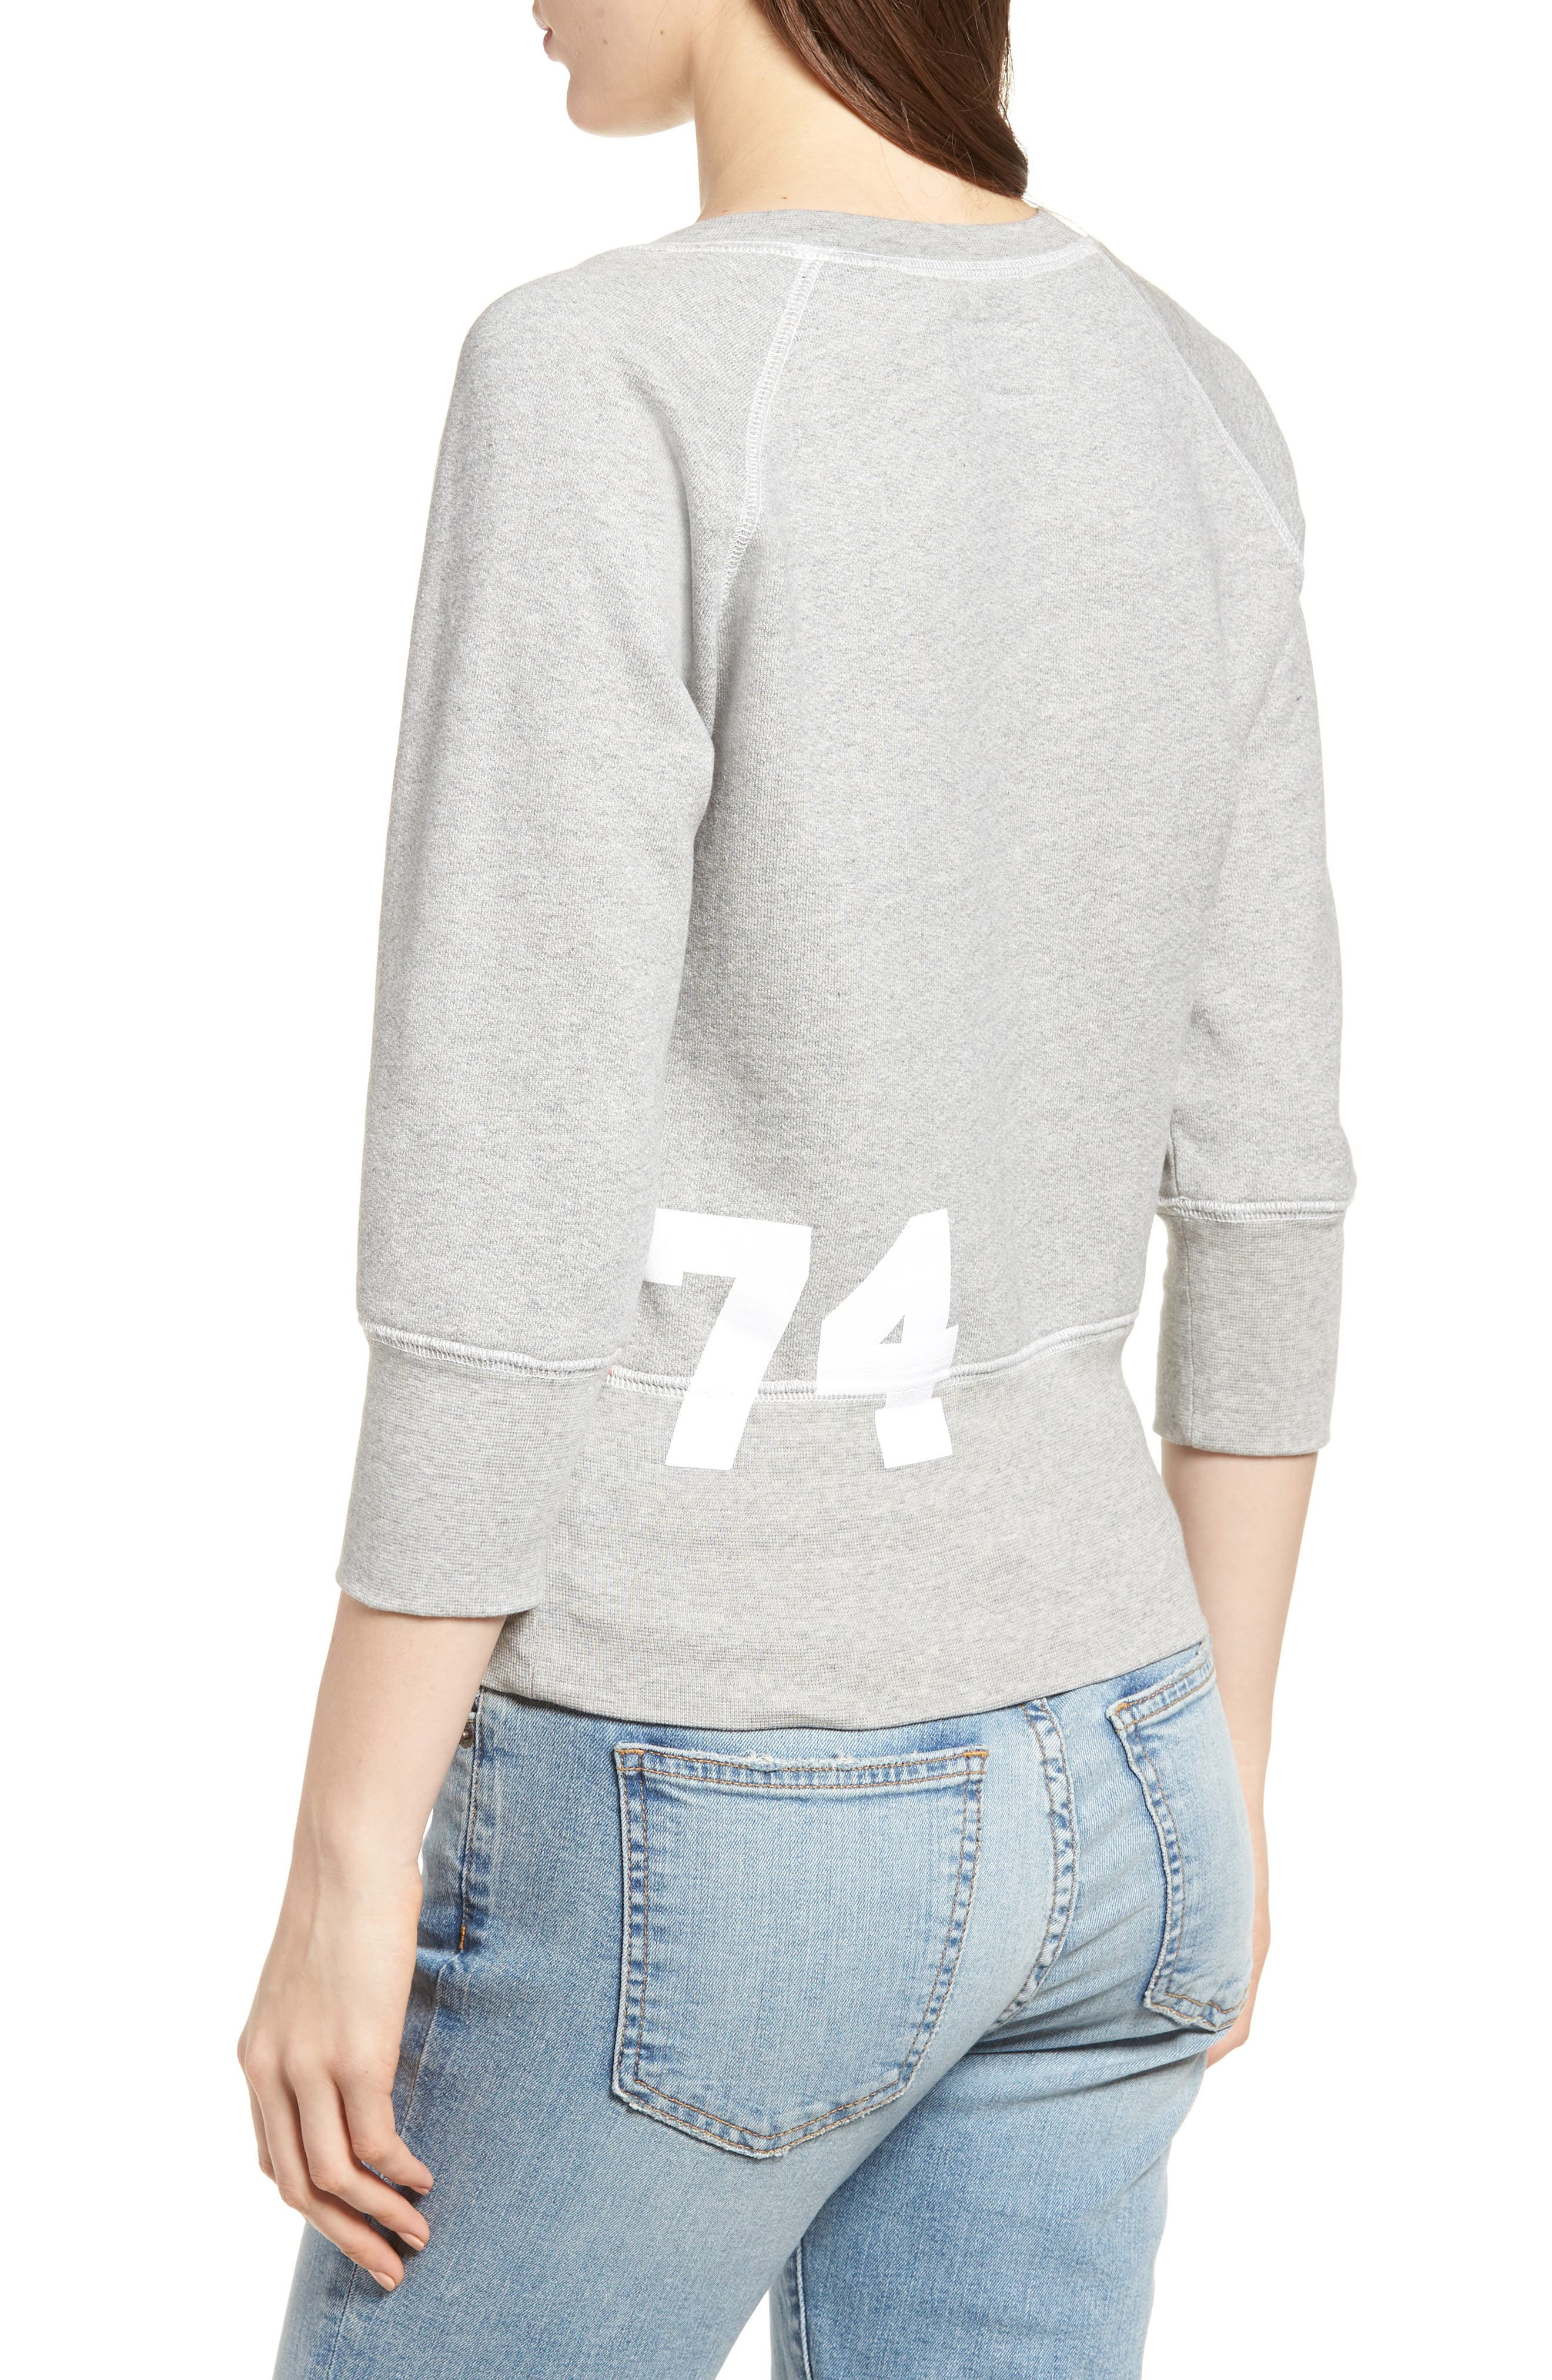 The Dallas Sweatshirt,                             Alternate thumbnail 2, color,                             Heather Grey Fleece